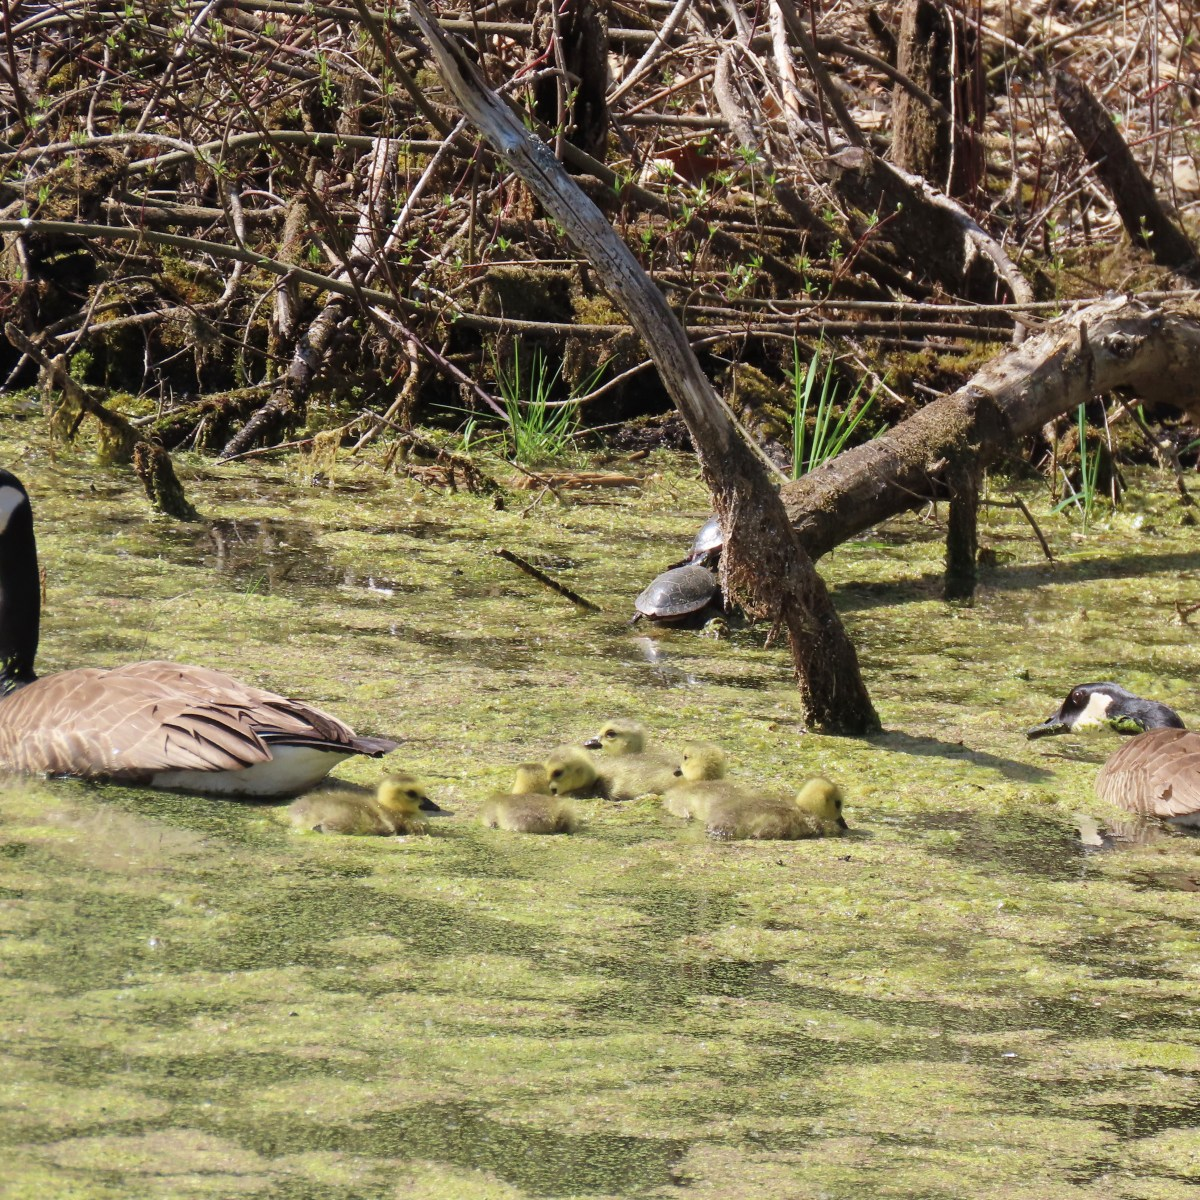 Geese parents and their goslings swim through duckweed-covered water